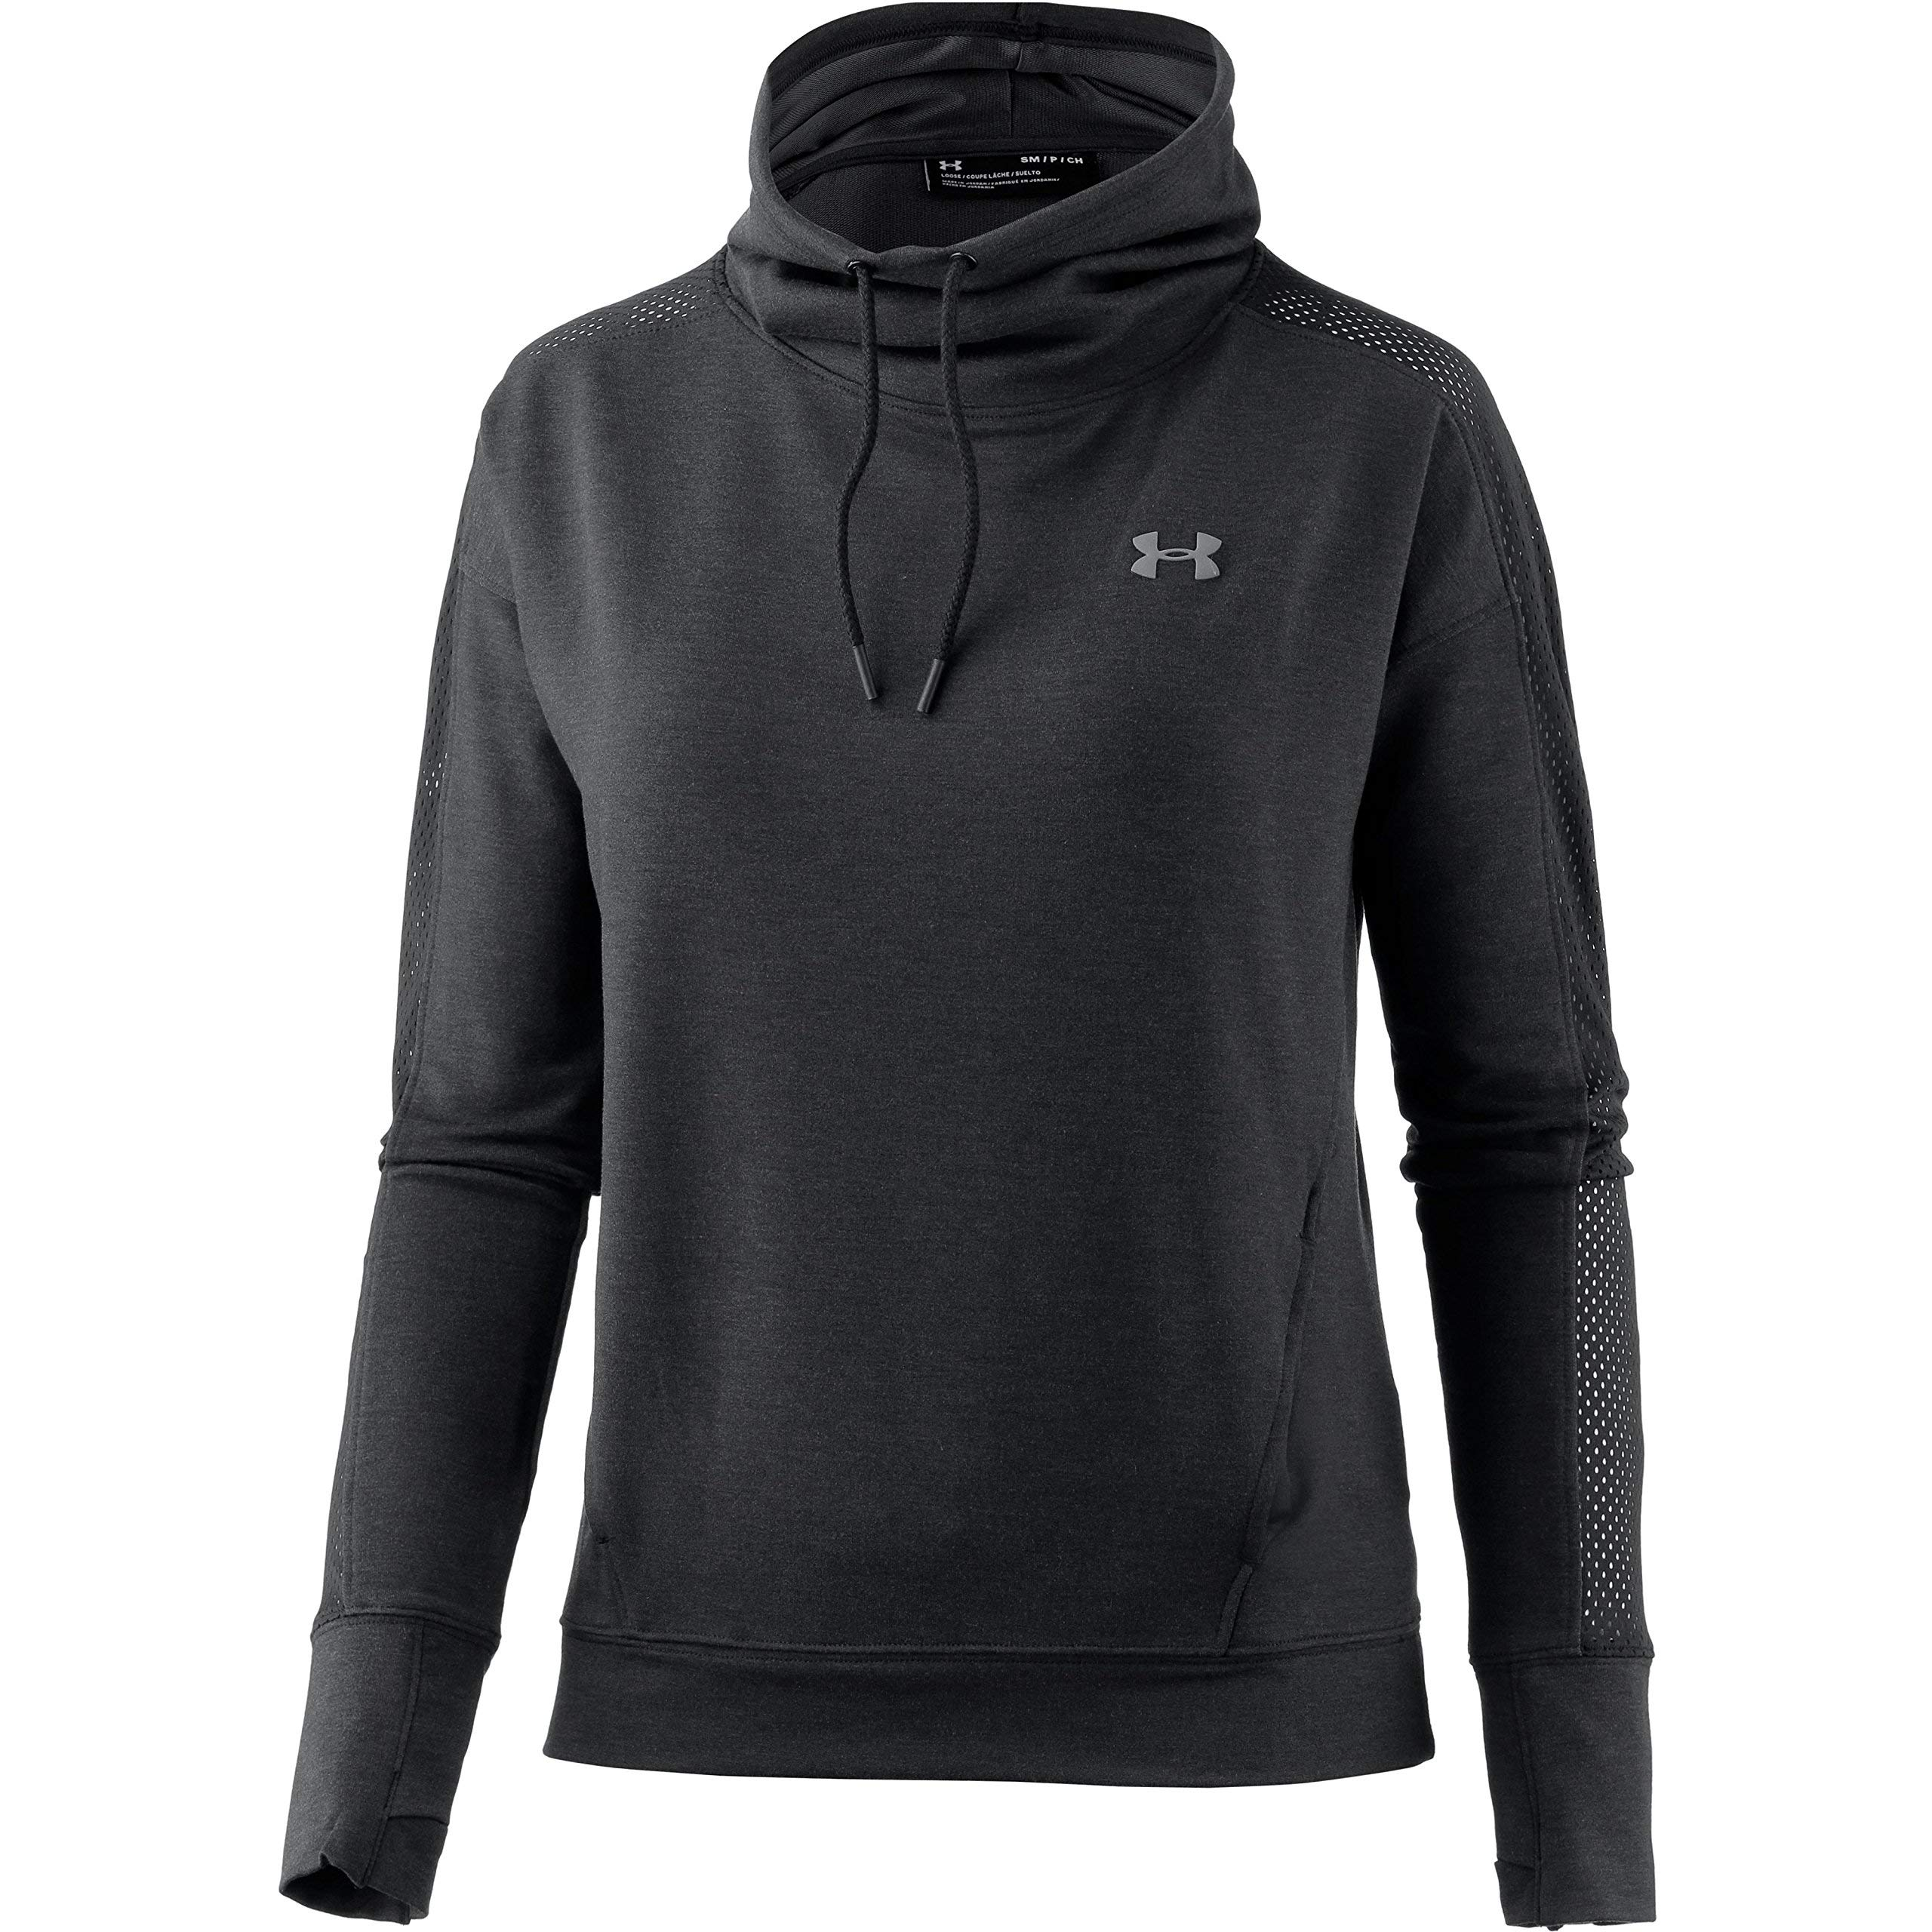 Under Armour Women's Featherweight Fleece Funnel Neck, Black (001)/Graphite, X-Small